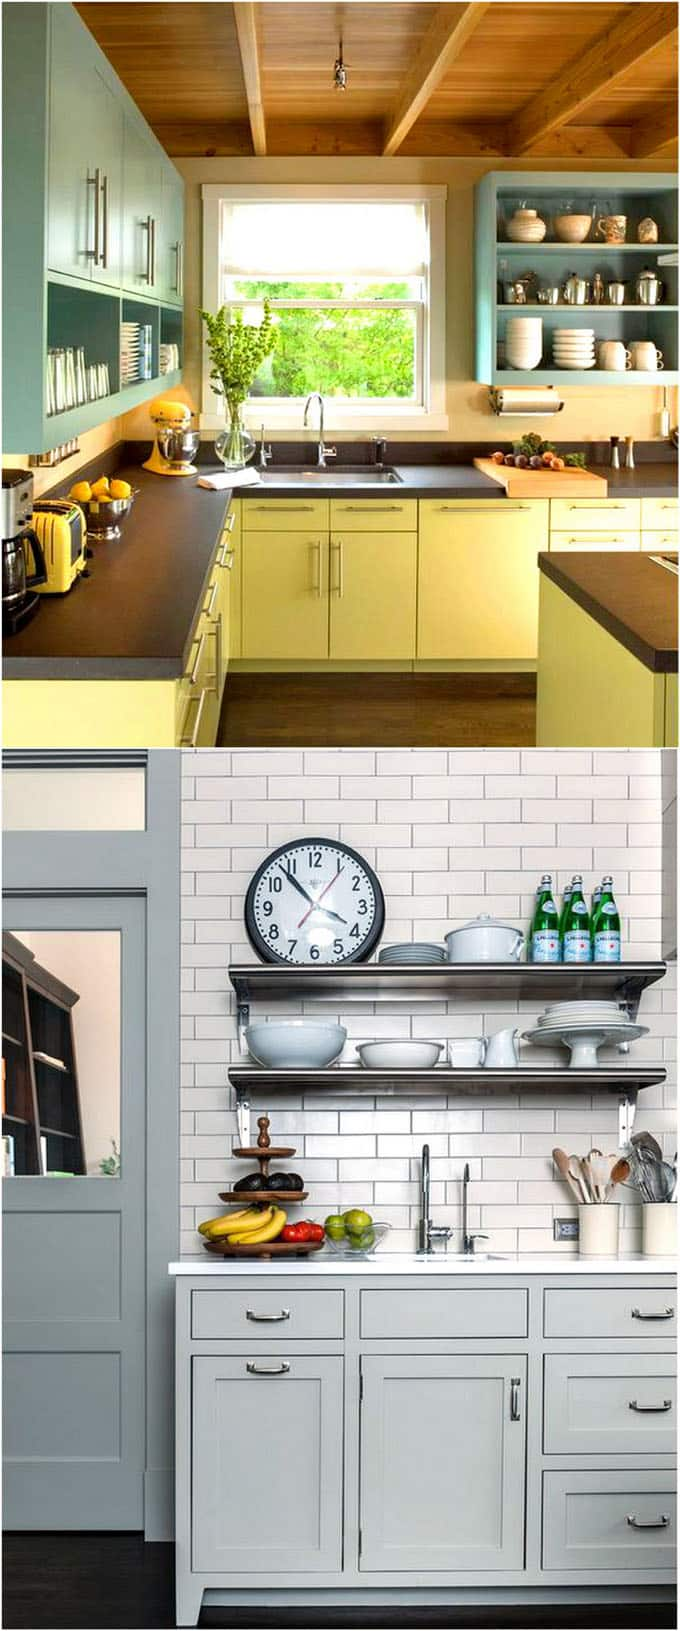 25 Beautiful Paint Colors For Kitchen Cabinets Apieceofrainbowblog Blue Benjamin Moores Stratton